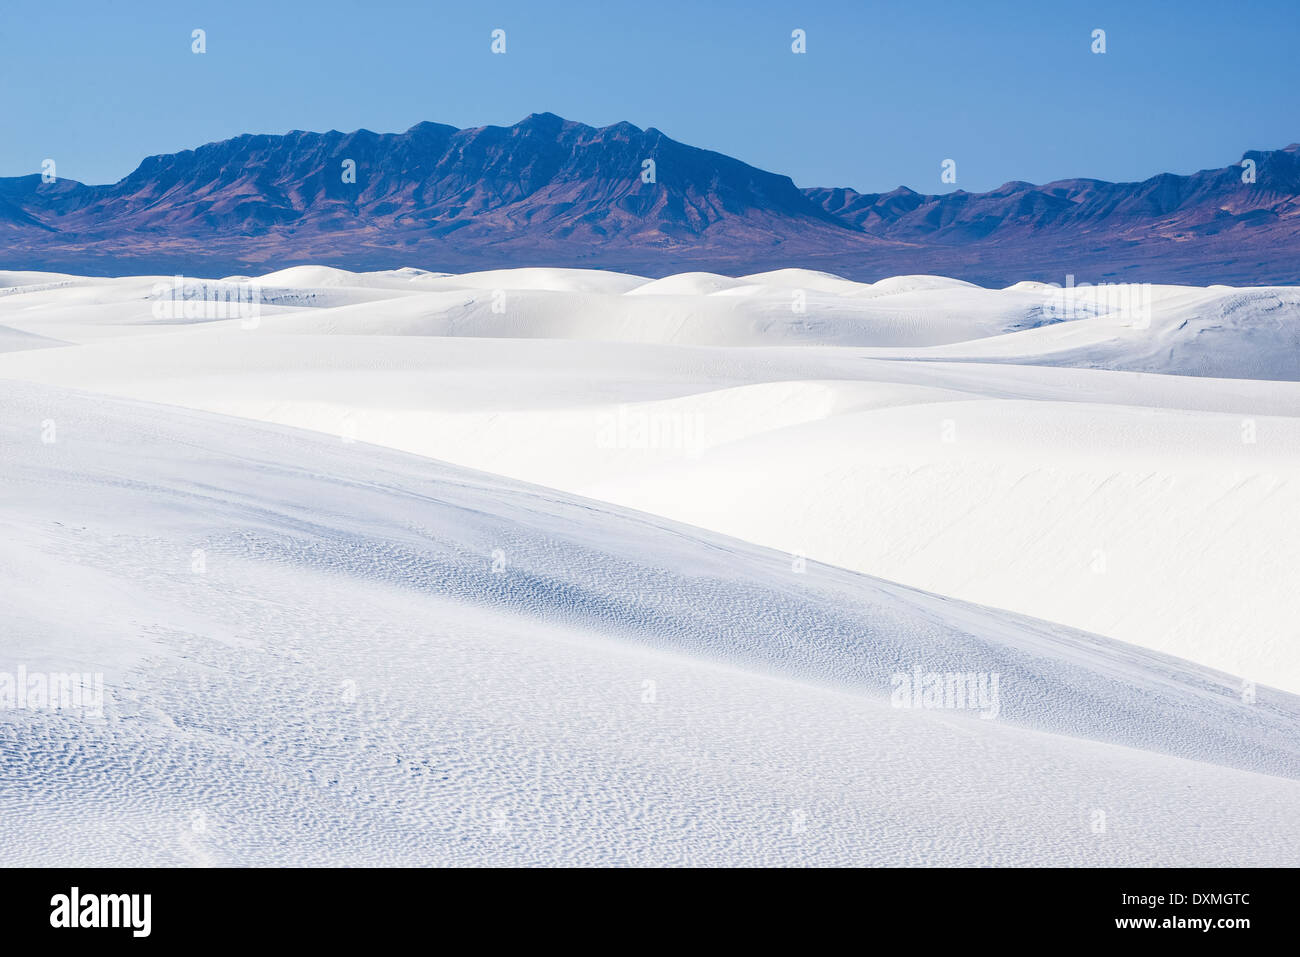 Sand dunes and San Andres Mountains, White Sands National Monument, New Mexico. - Stock Image